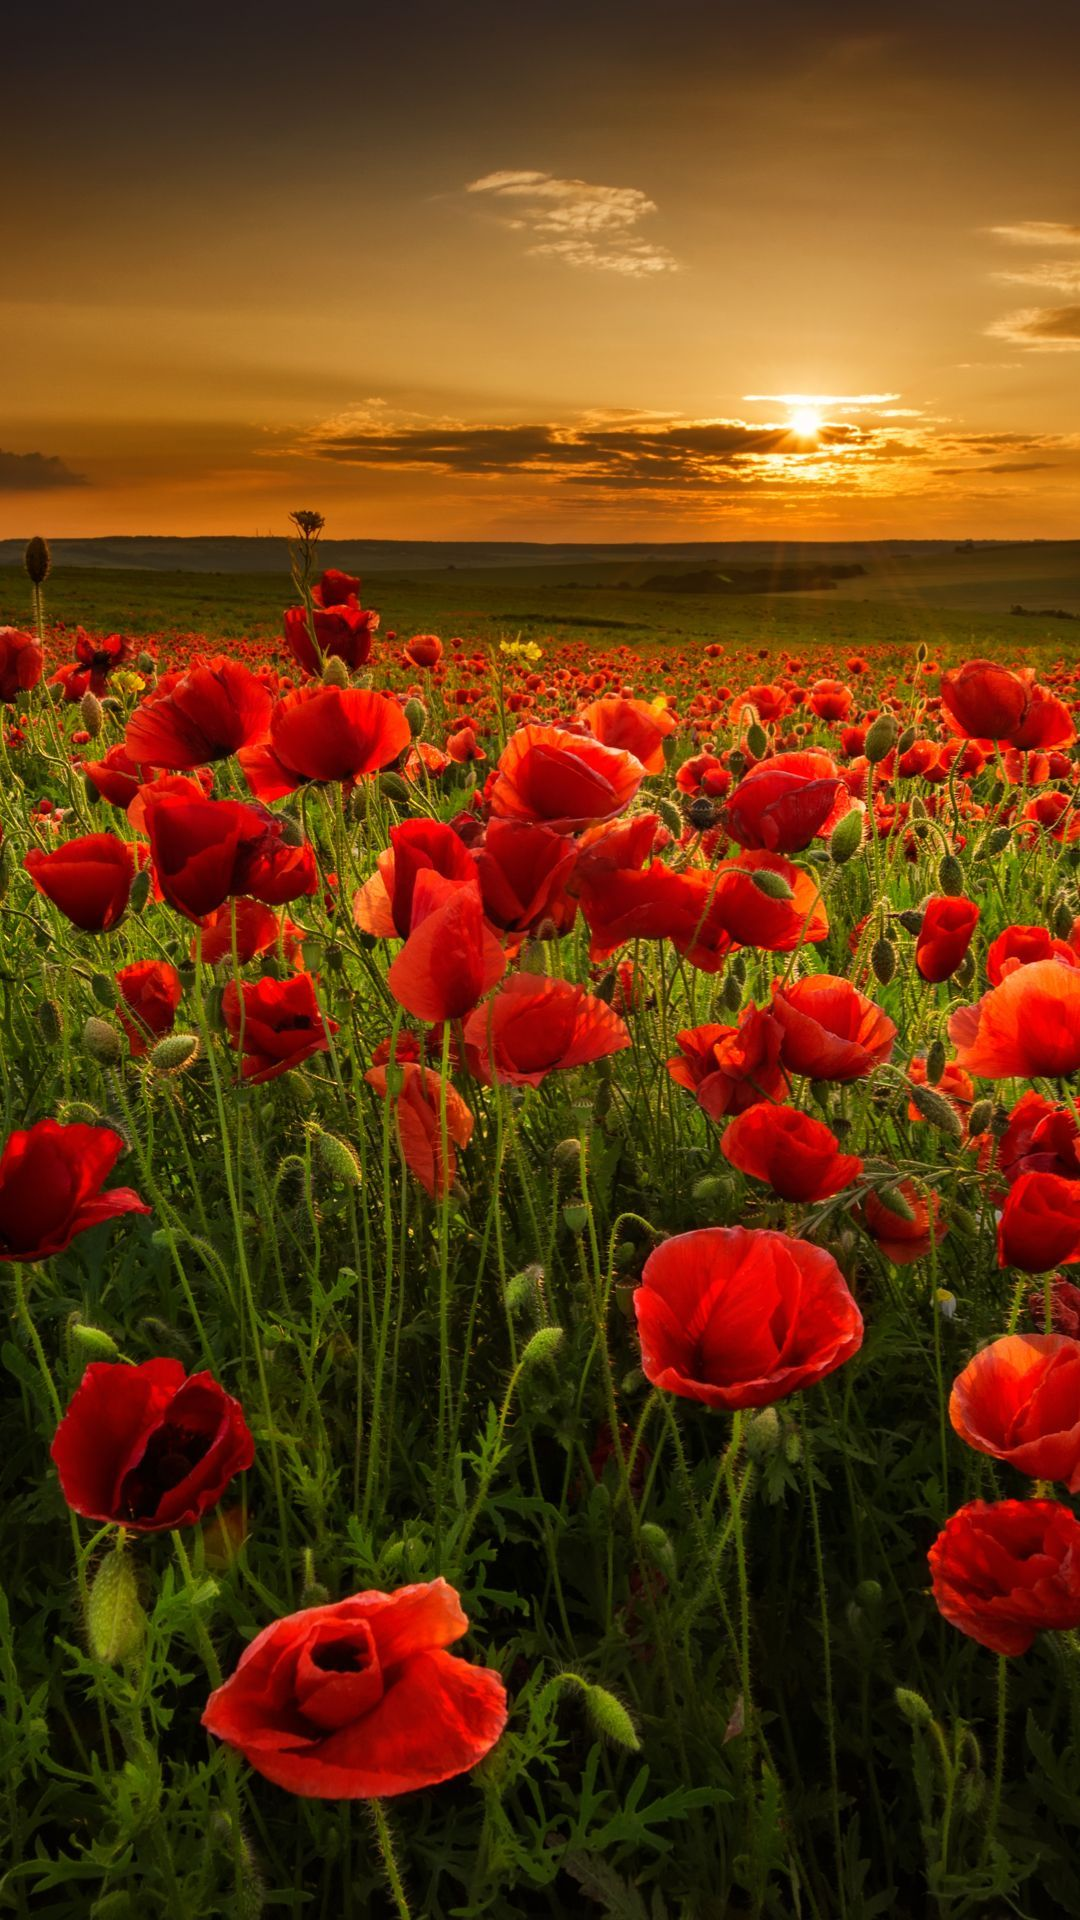 Aesthetic Red Flower Field Wallpapers - Wallpaper Cave